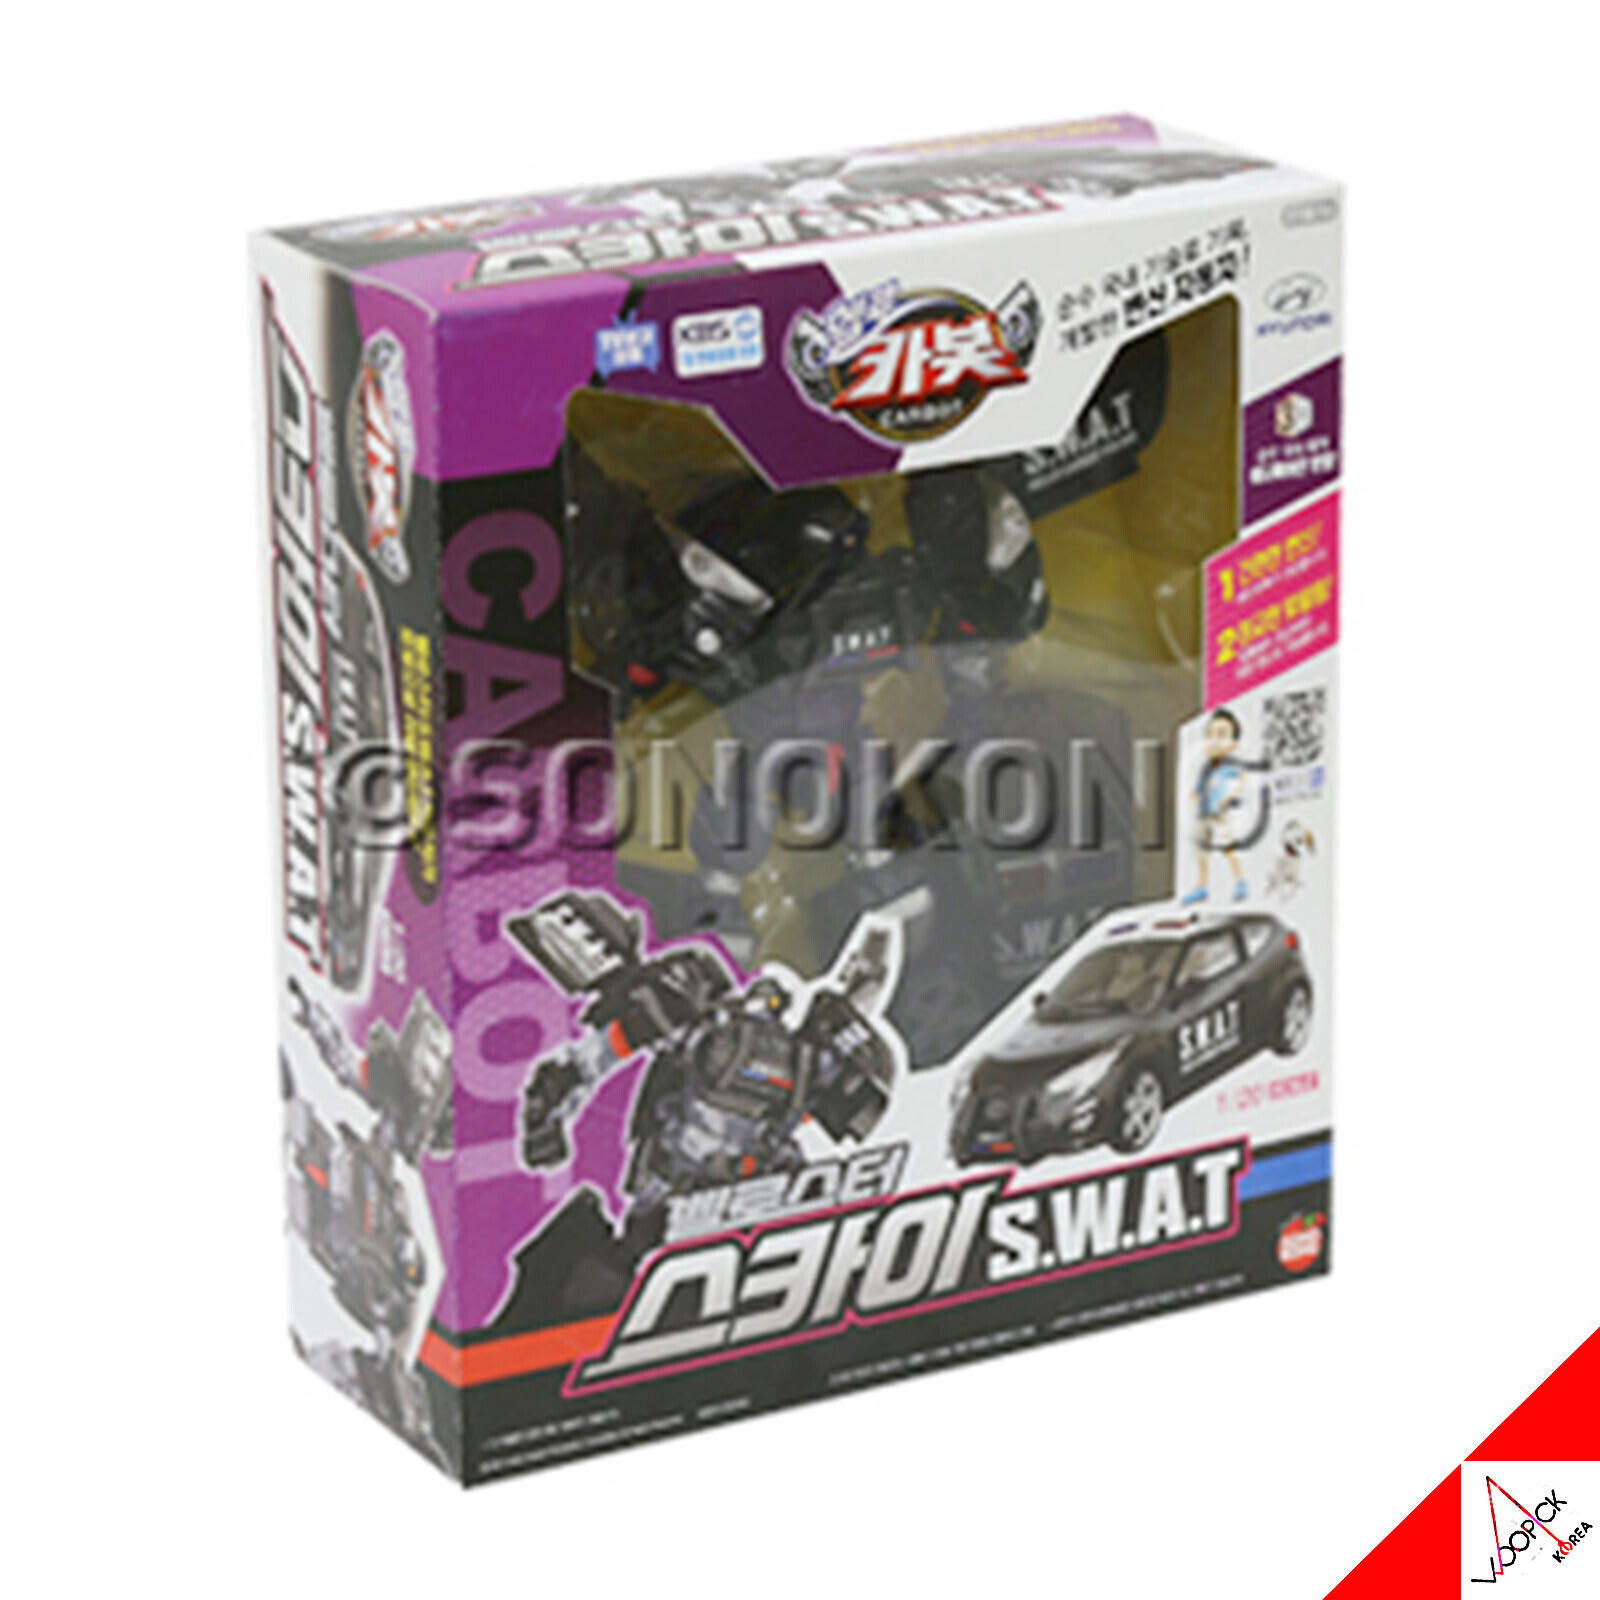 Hello Carbot Veloster SKY SWAT 1 20 Scale Transformer Police Car Robot Toy 2019